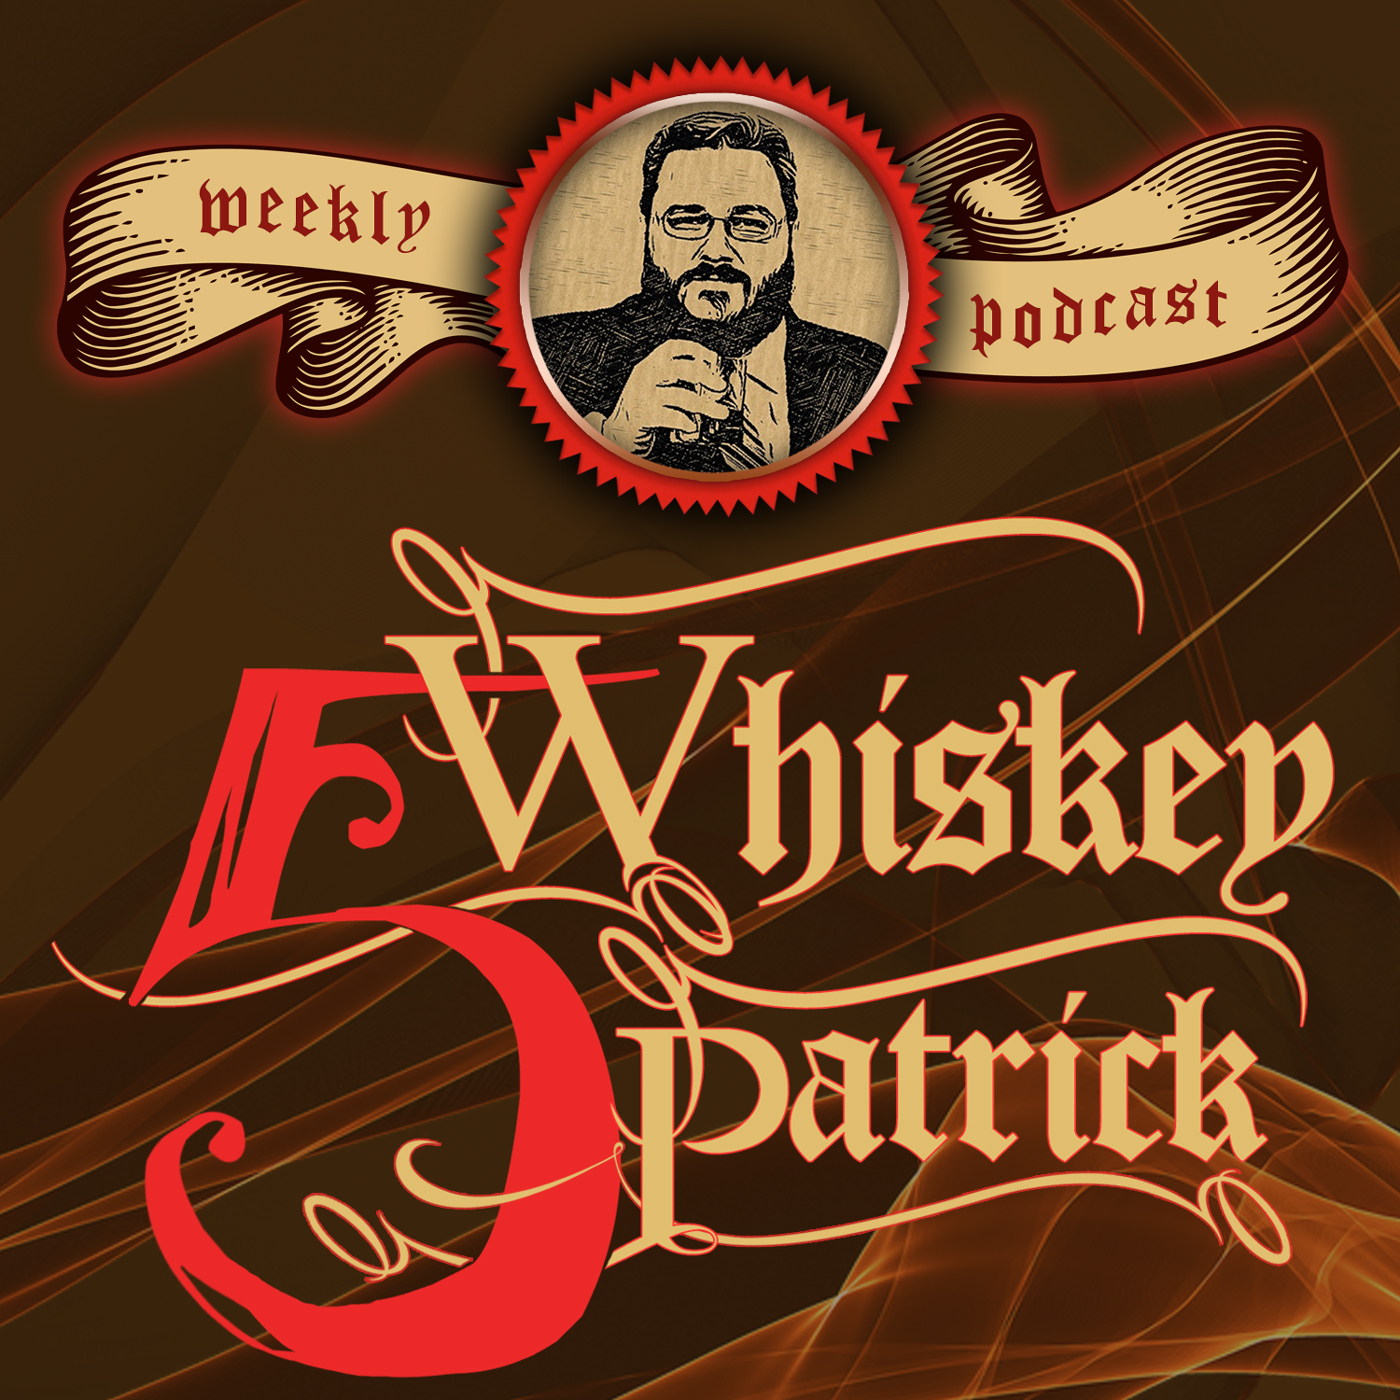 Five Whiskey Patrick